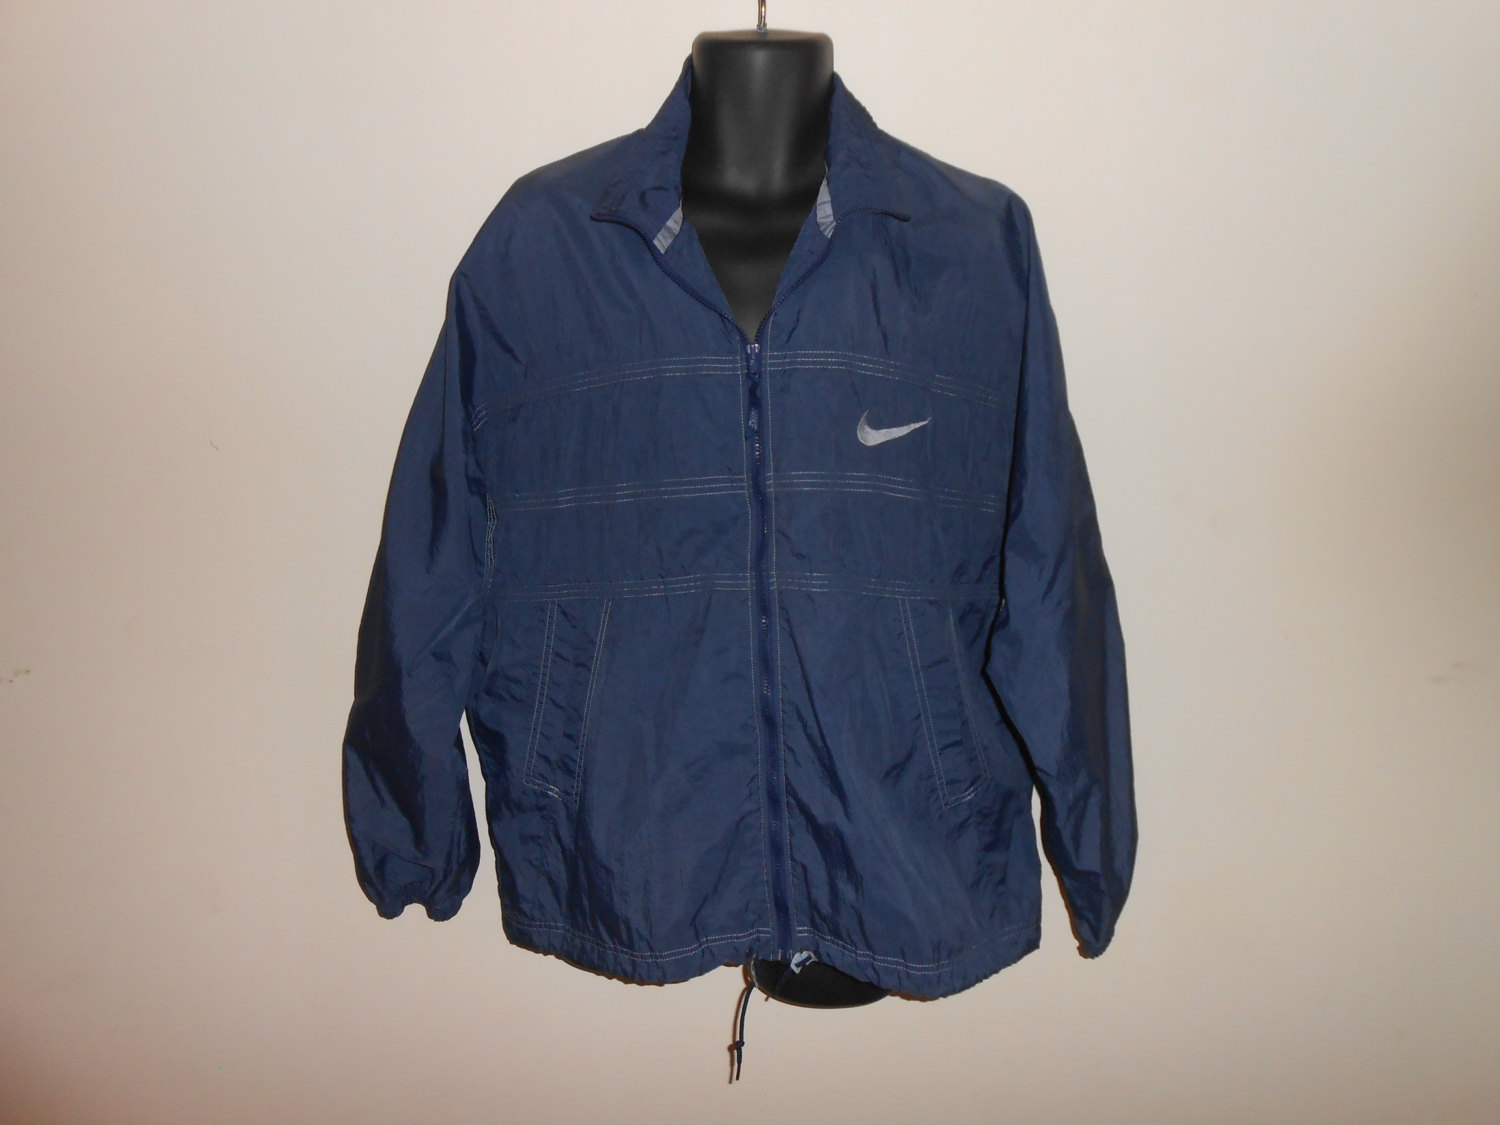 Vintage 90s Nike Navy Blue Zip Up Windbreaker Jacket Sz L